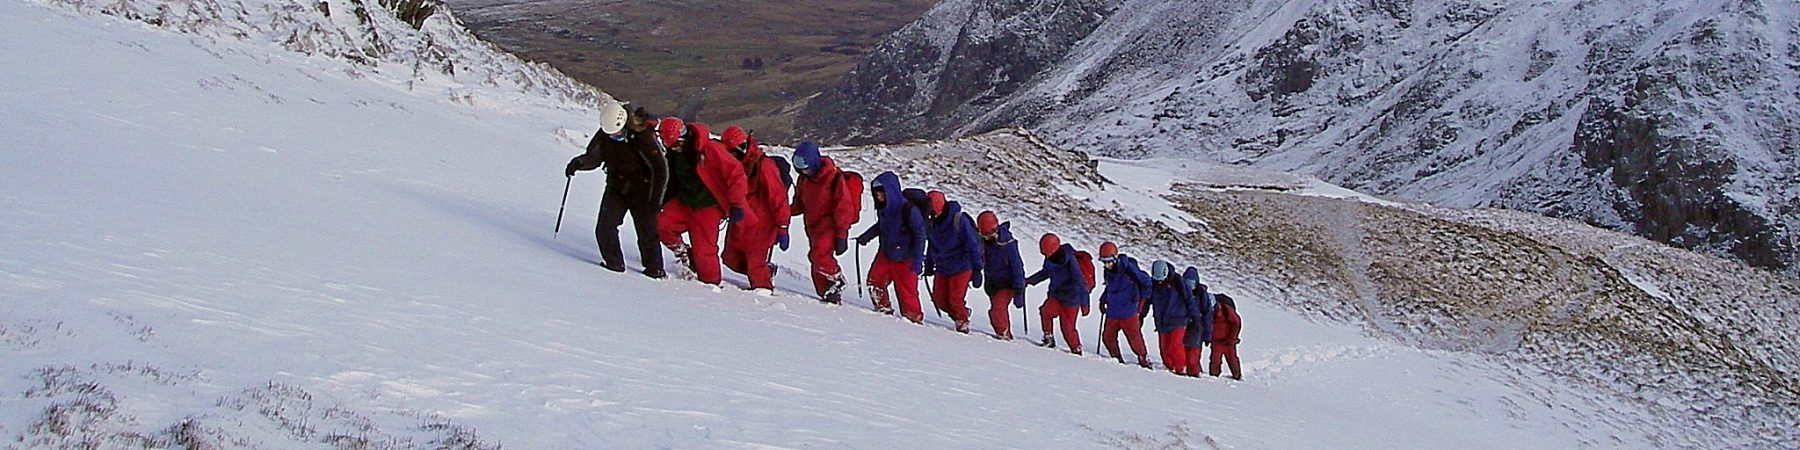 winter mountaineering course uk